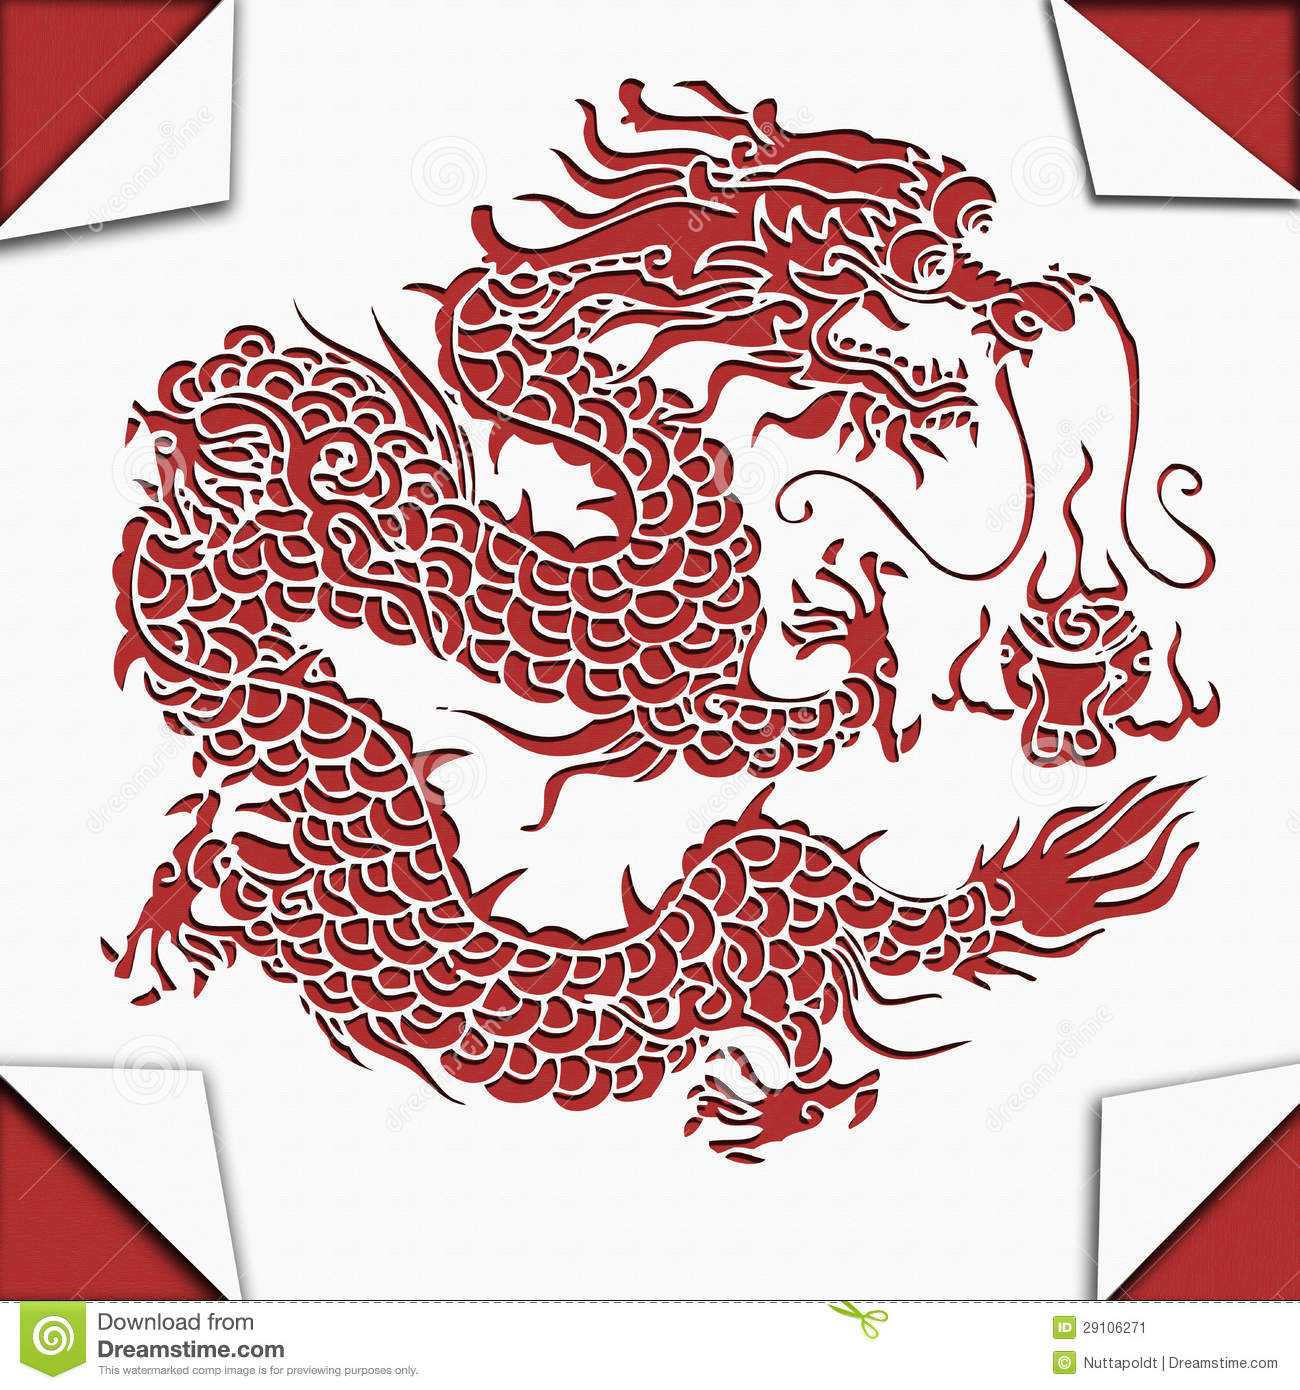 Chinese dragon paper cut art stock illustration image for Chinese paper cutting templates dragon